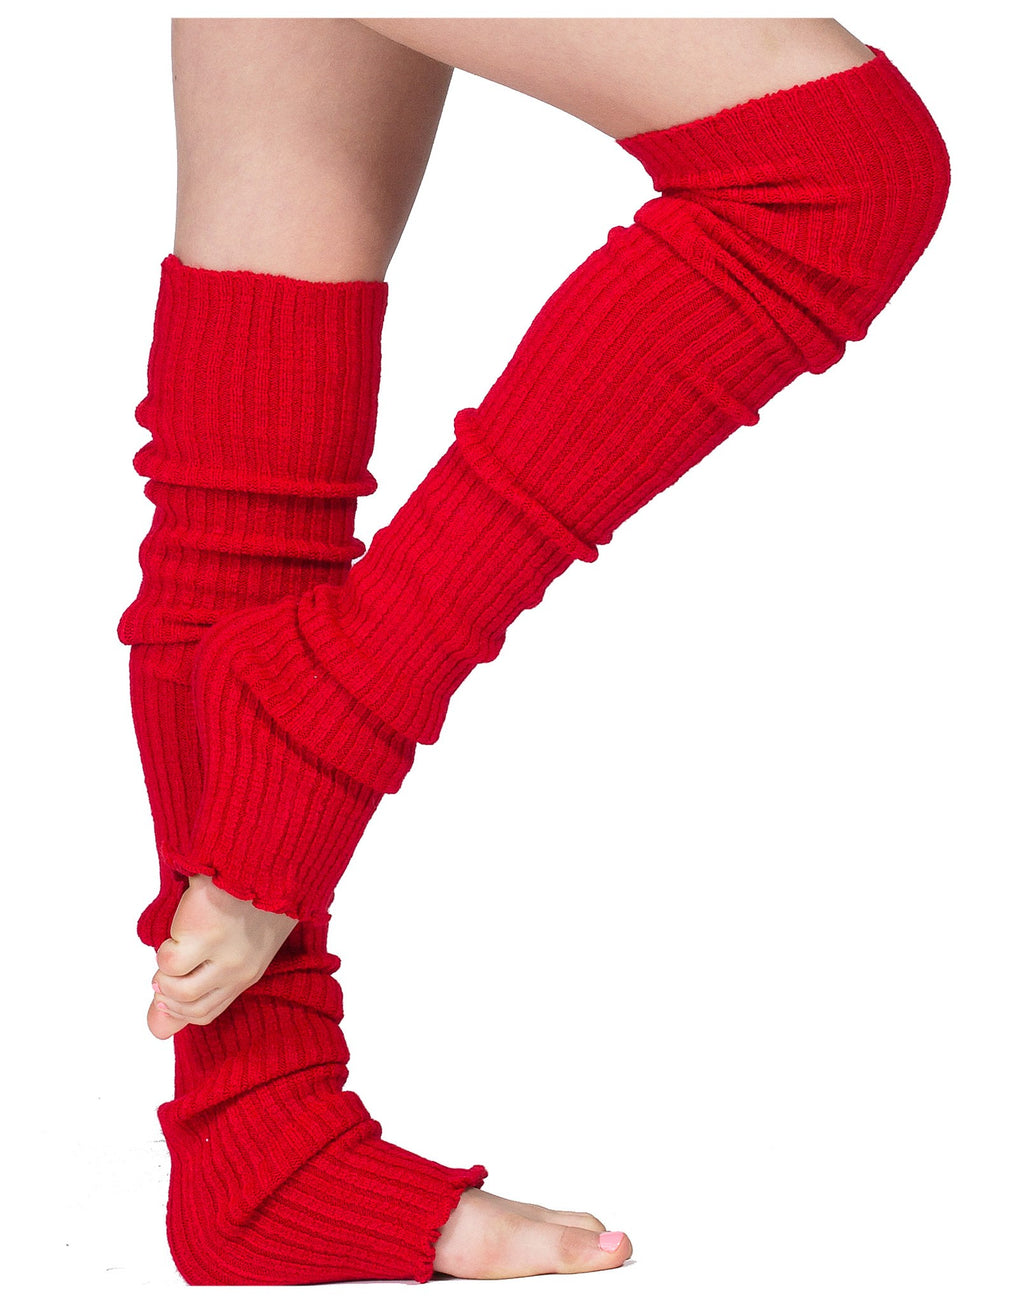 New York Black / 28 Inch Leg Warmers Leg Warmers Thigh High Stretch Knit Ribbed 28 Inch Leg Warmers High Quality KD dance Made In USA @KDdanceNewYork #MadeInUSA - 1